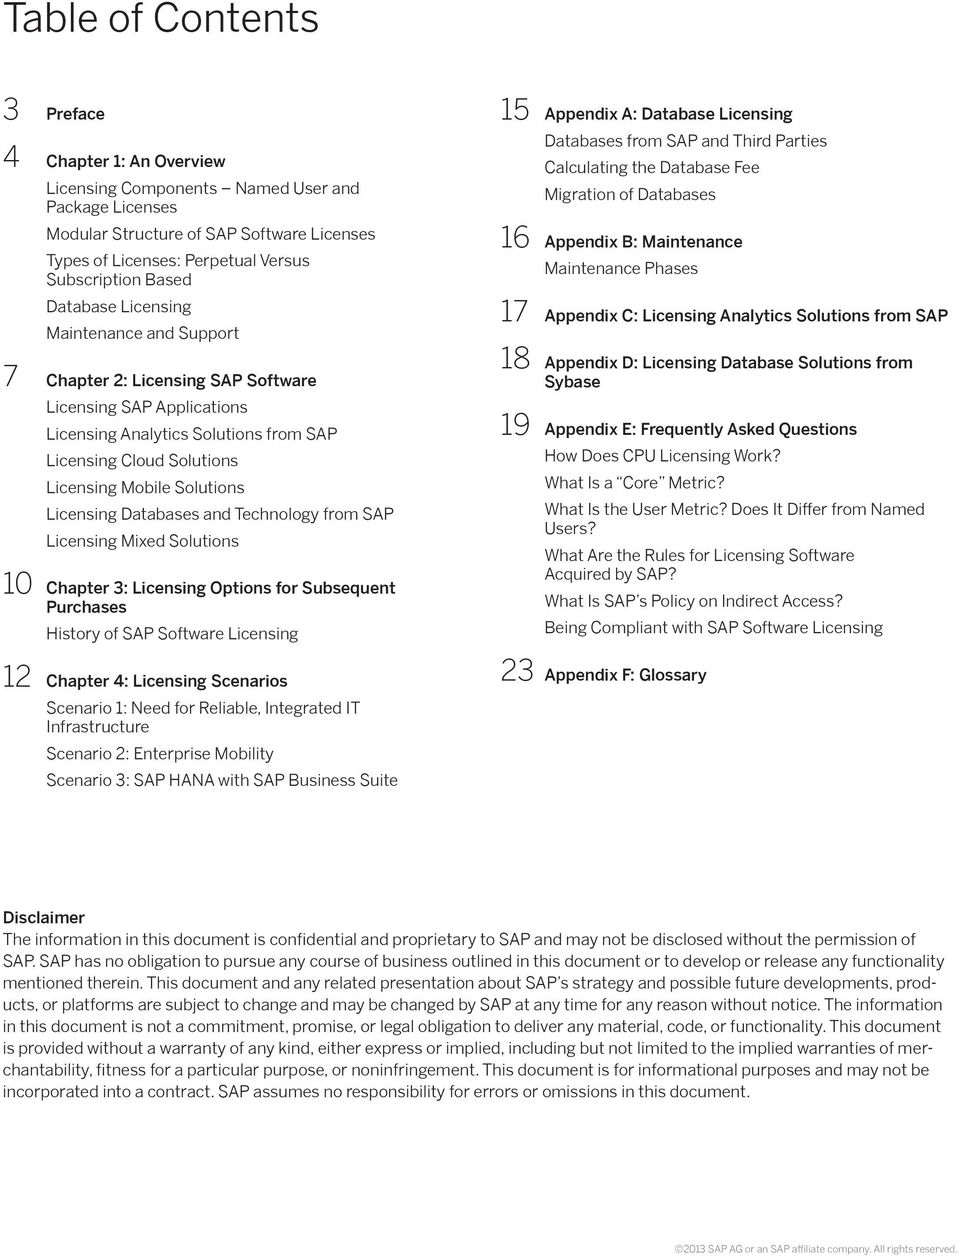 Solutions Licensing Databases and Technology from SAP Licensing Mixed Solutions 10 Chapter 3: Licensing Options for Subsequent Purchases History of SAP Software Licensing 12 Chapter 4: Licensing